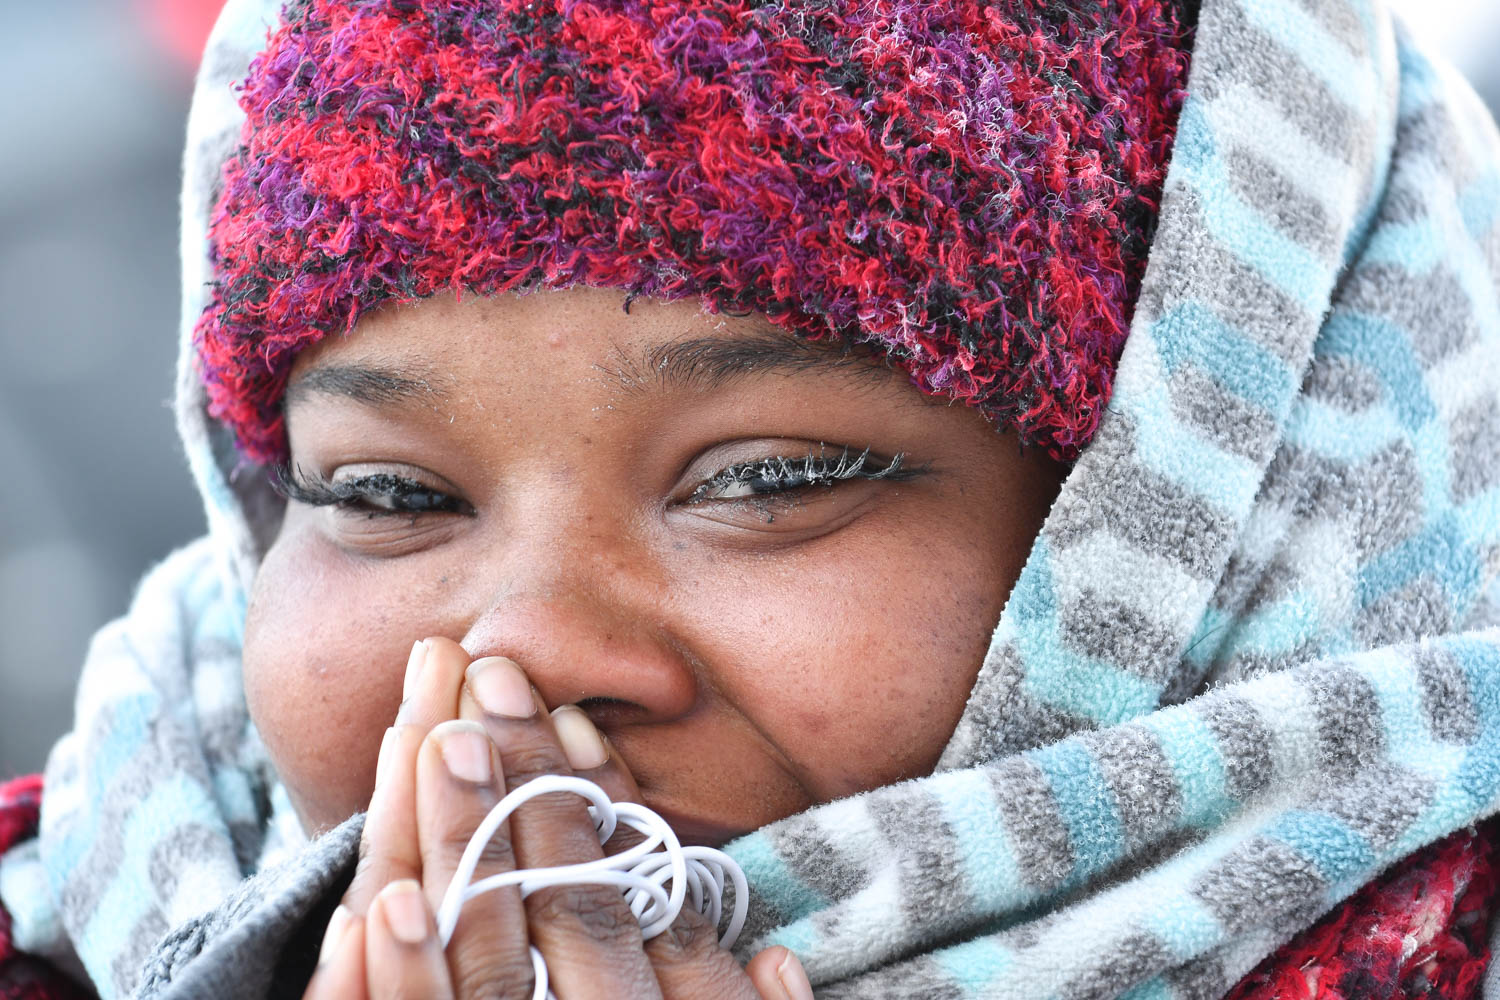 Ice forms on the eyelashes of Aubreyanne Edwards, of Rock Island, as she braves minus 27 windchill while walking to The Fort Armstrong Wednesday, Jan. 30, 2019, in Rock Island. (Todd Mizener - Dispatch/Argus)